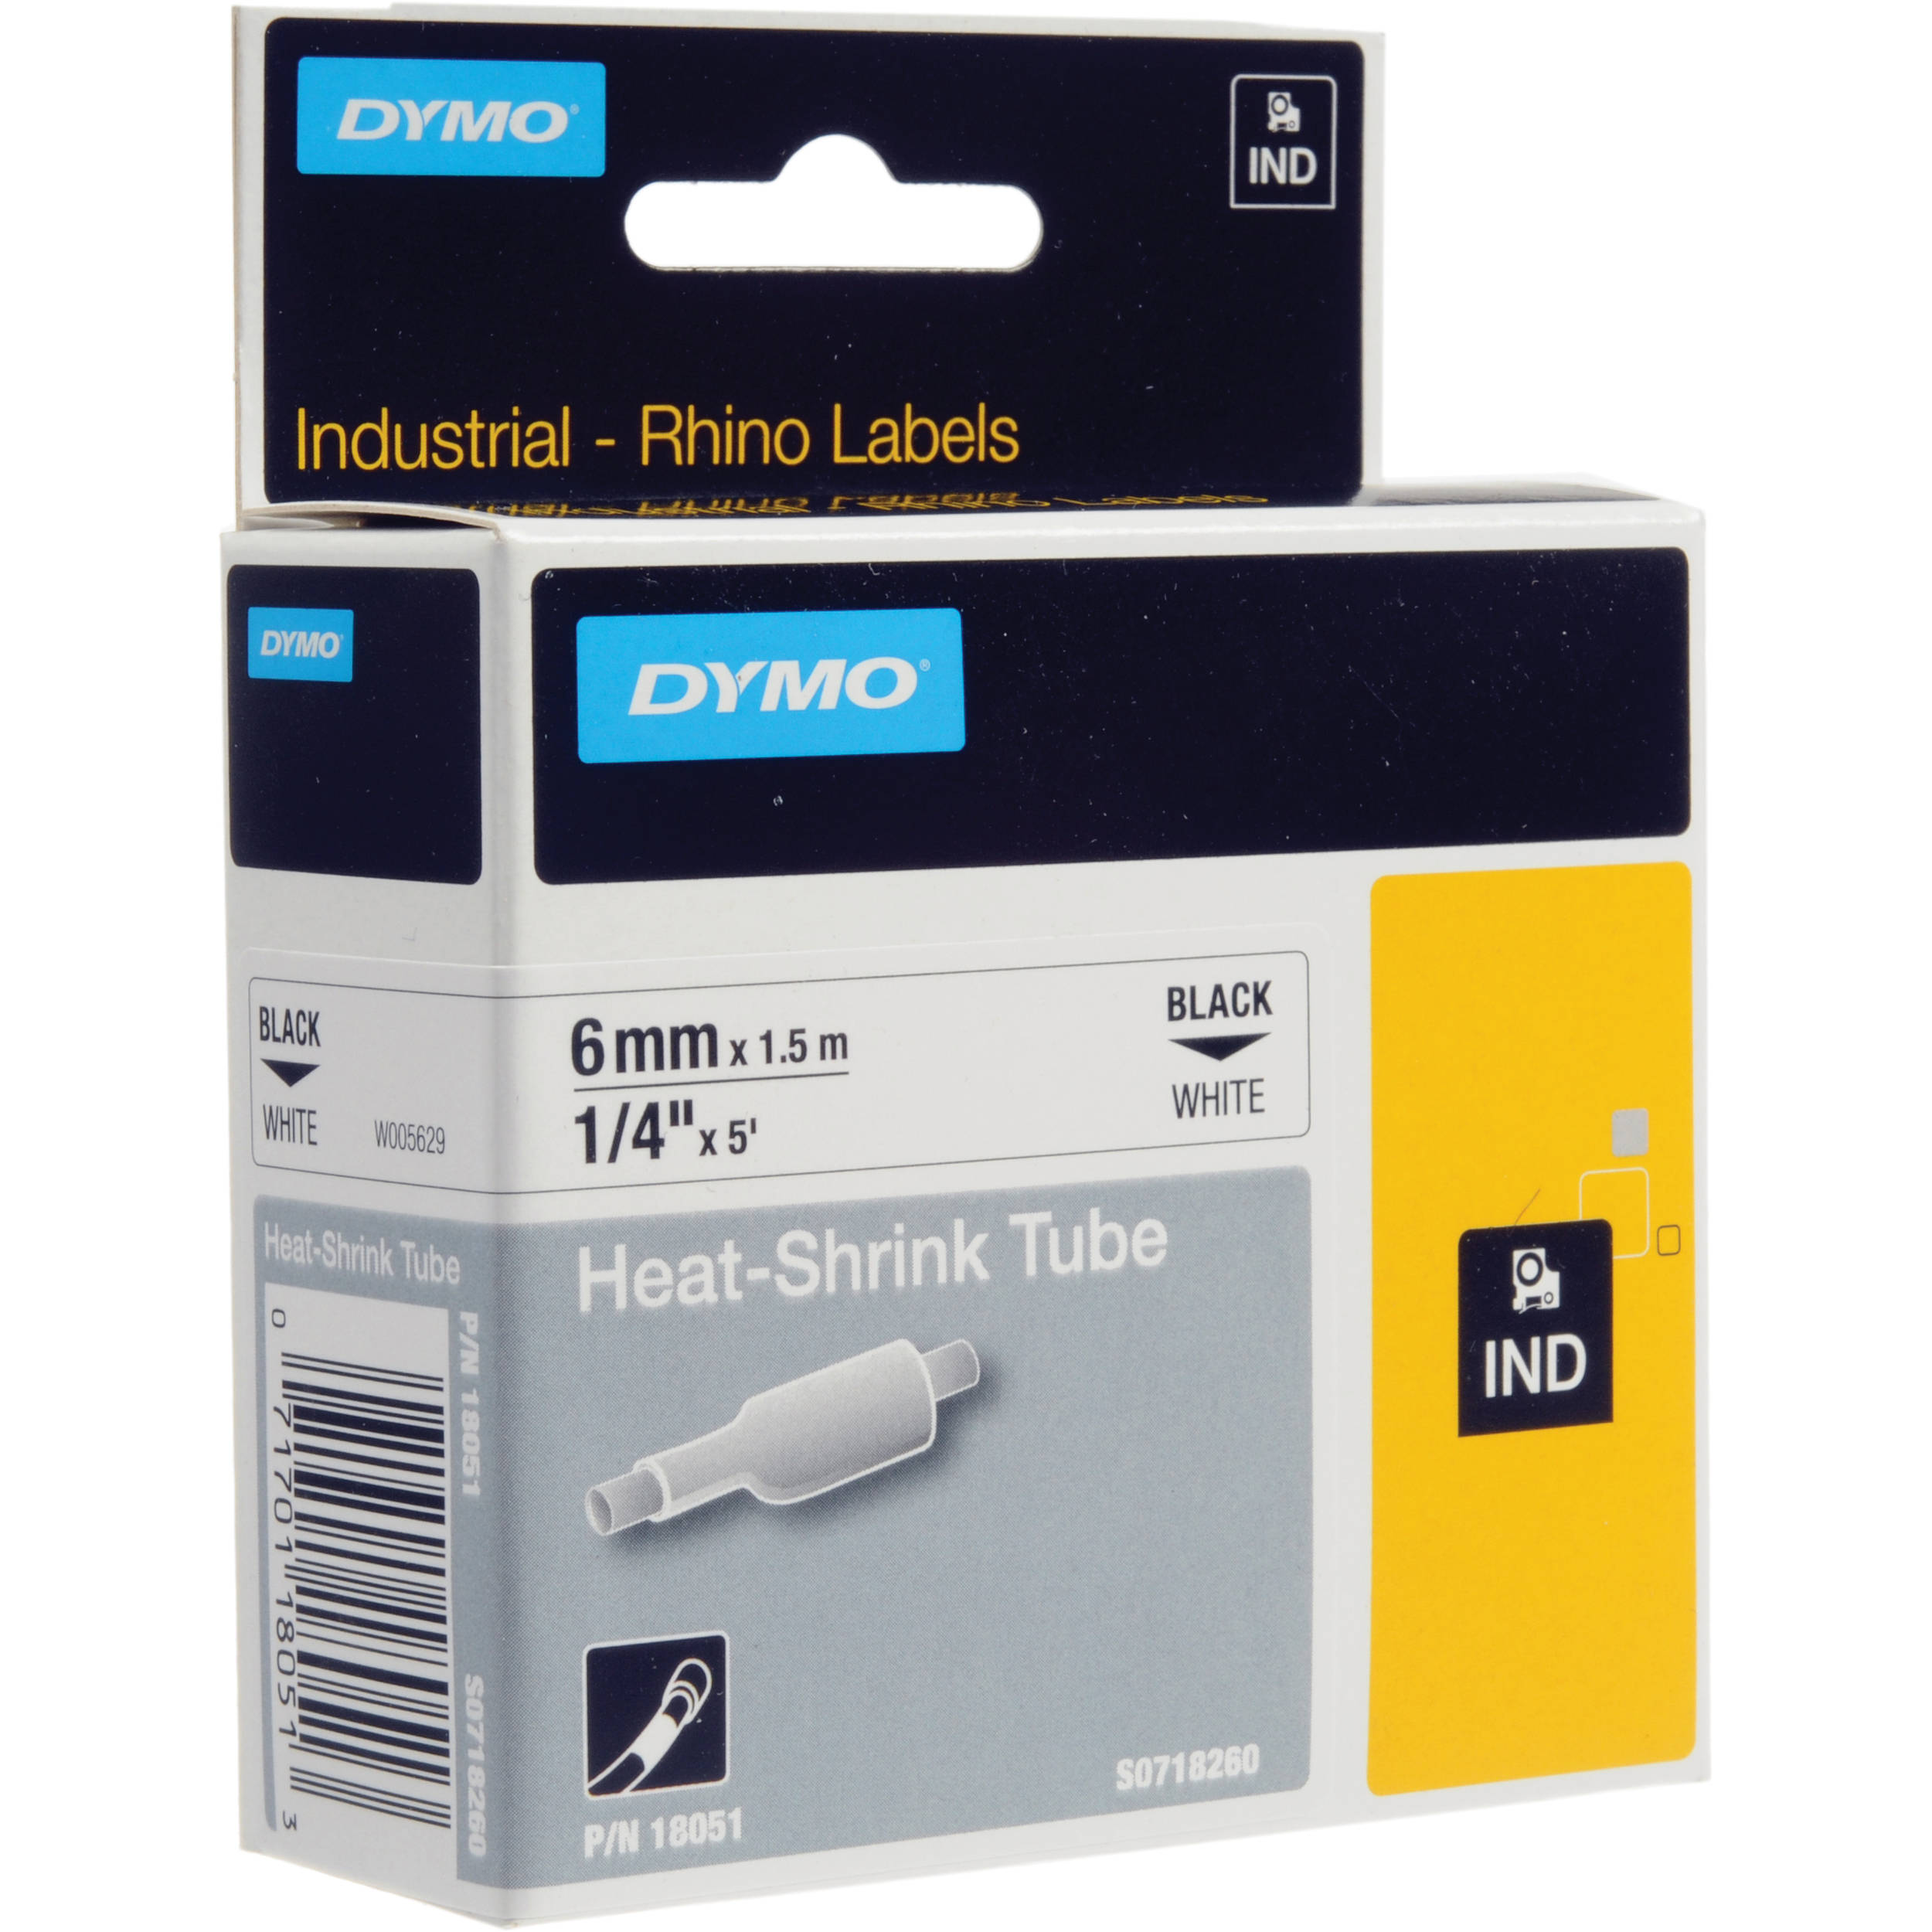 Dymo White 1 4 Heat Shrink Tubes 18051 Bh Photo Video Pipeelectric Wire Protection Tubeblack Vinyl Tube Buy Electric